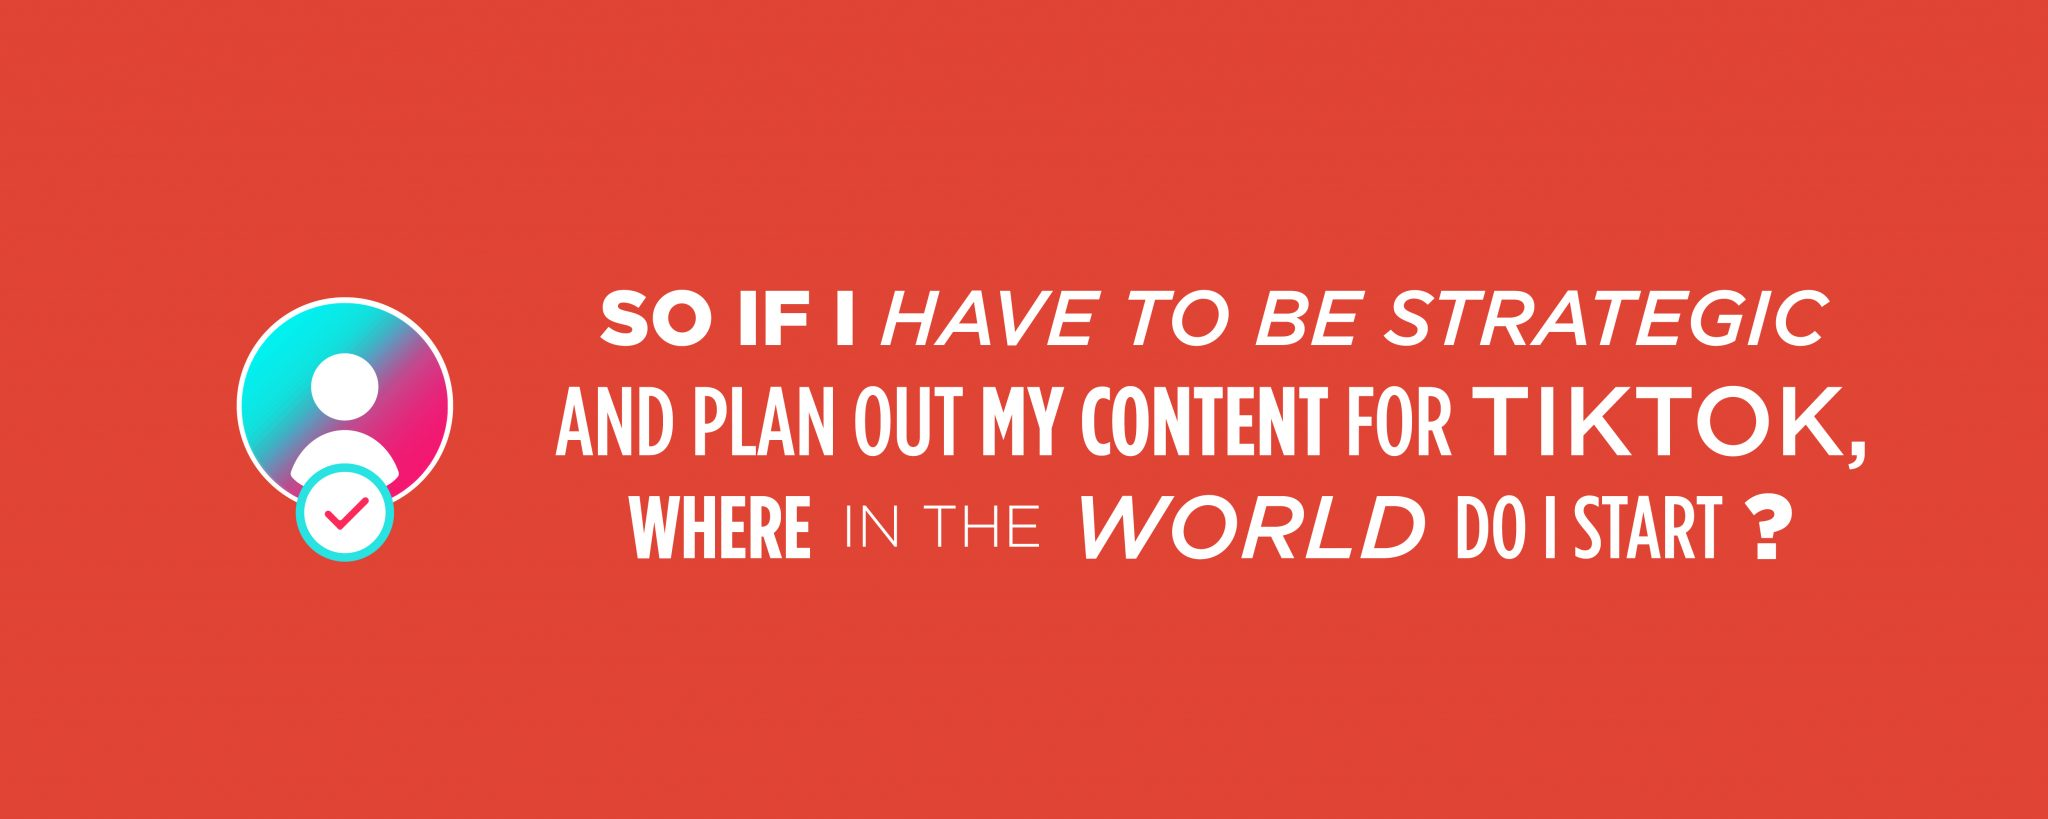 Red graphic that reads: So if I have to be strategic and plan out my content for TikTok, where in the world do I start?!